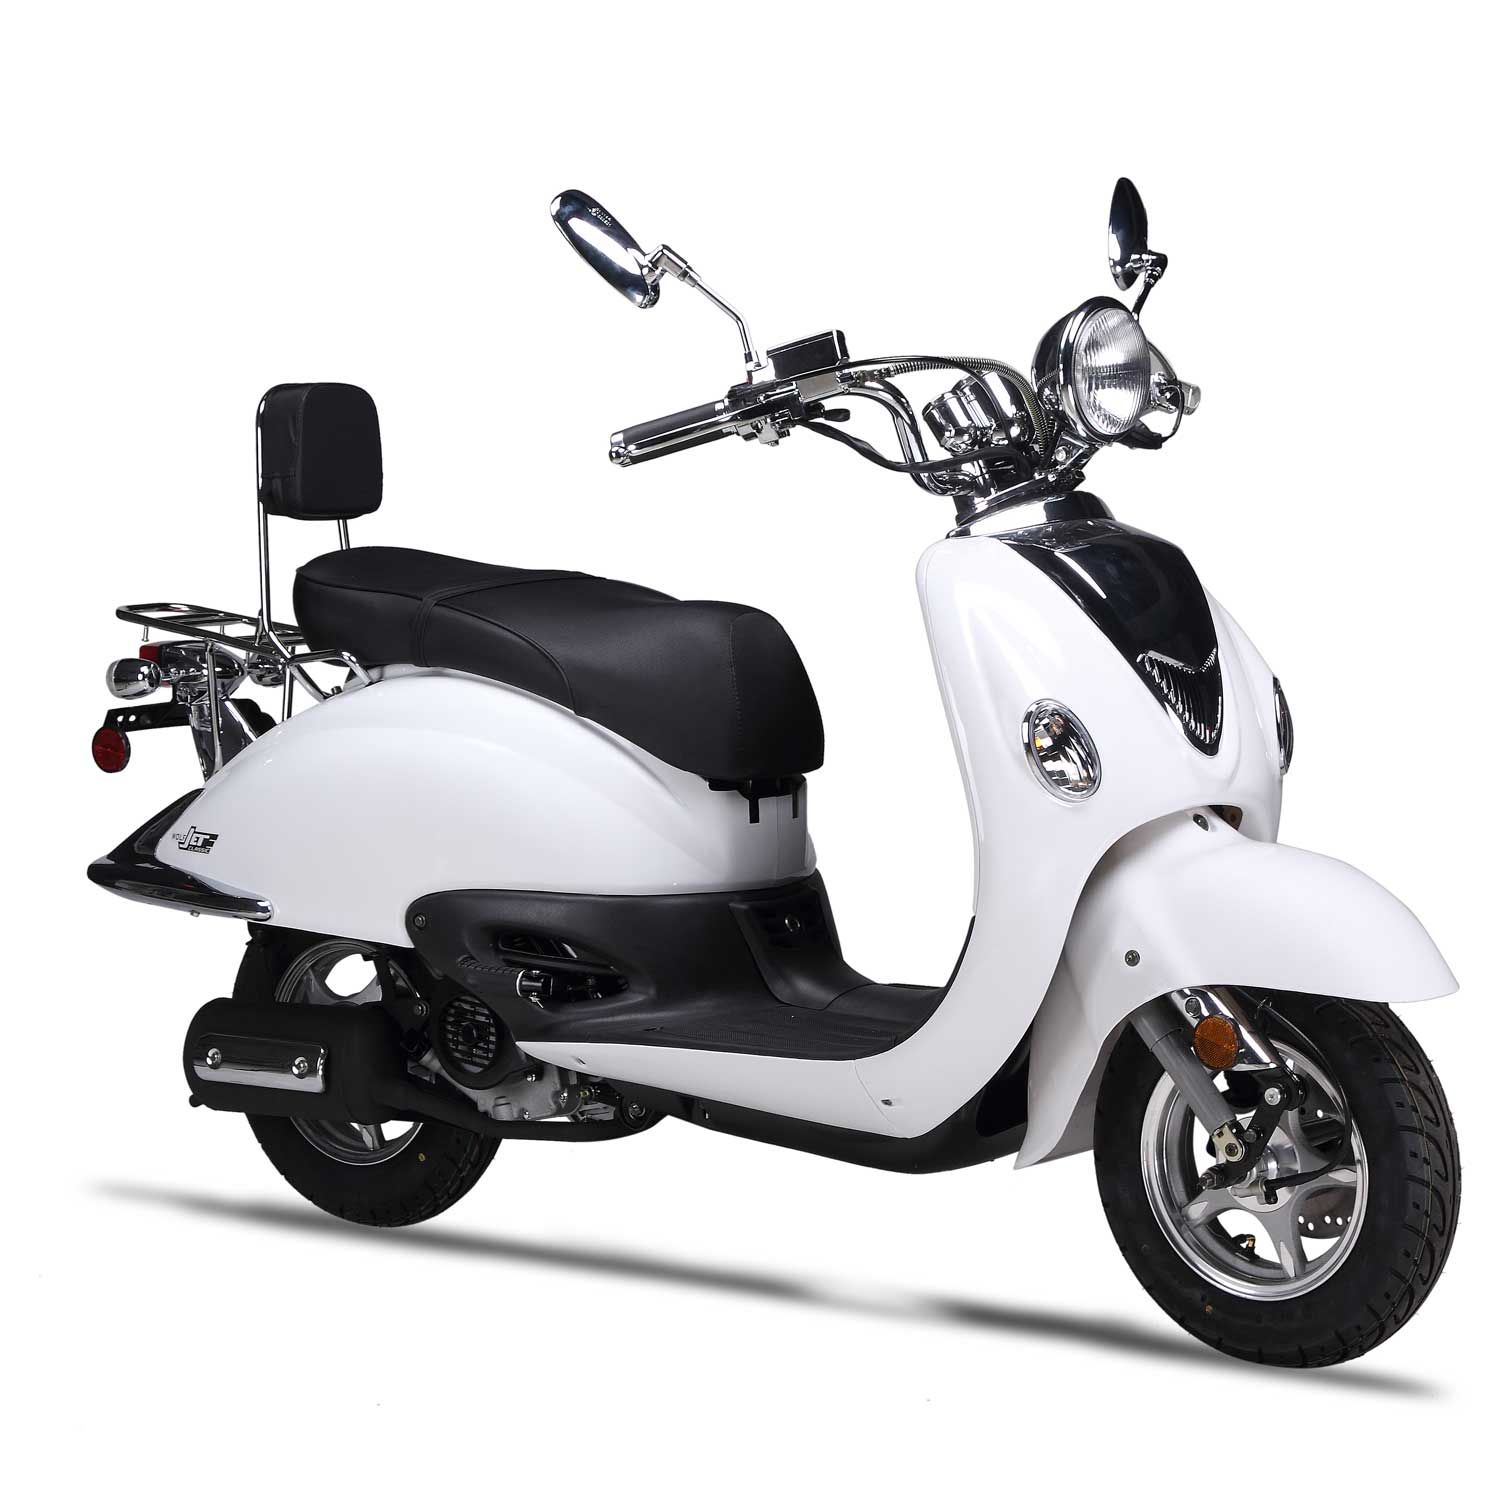 Wolf Jet - Wolf Brand Scooters | Triumph | Jet, Motorcycle